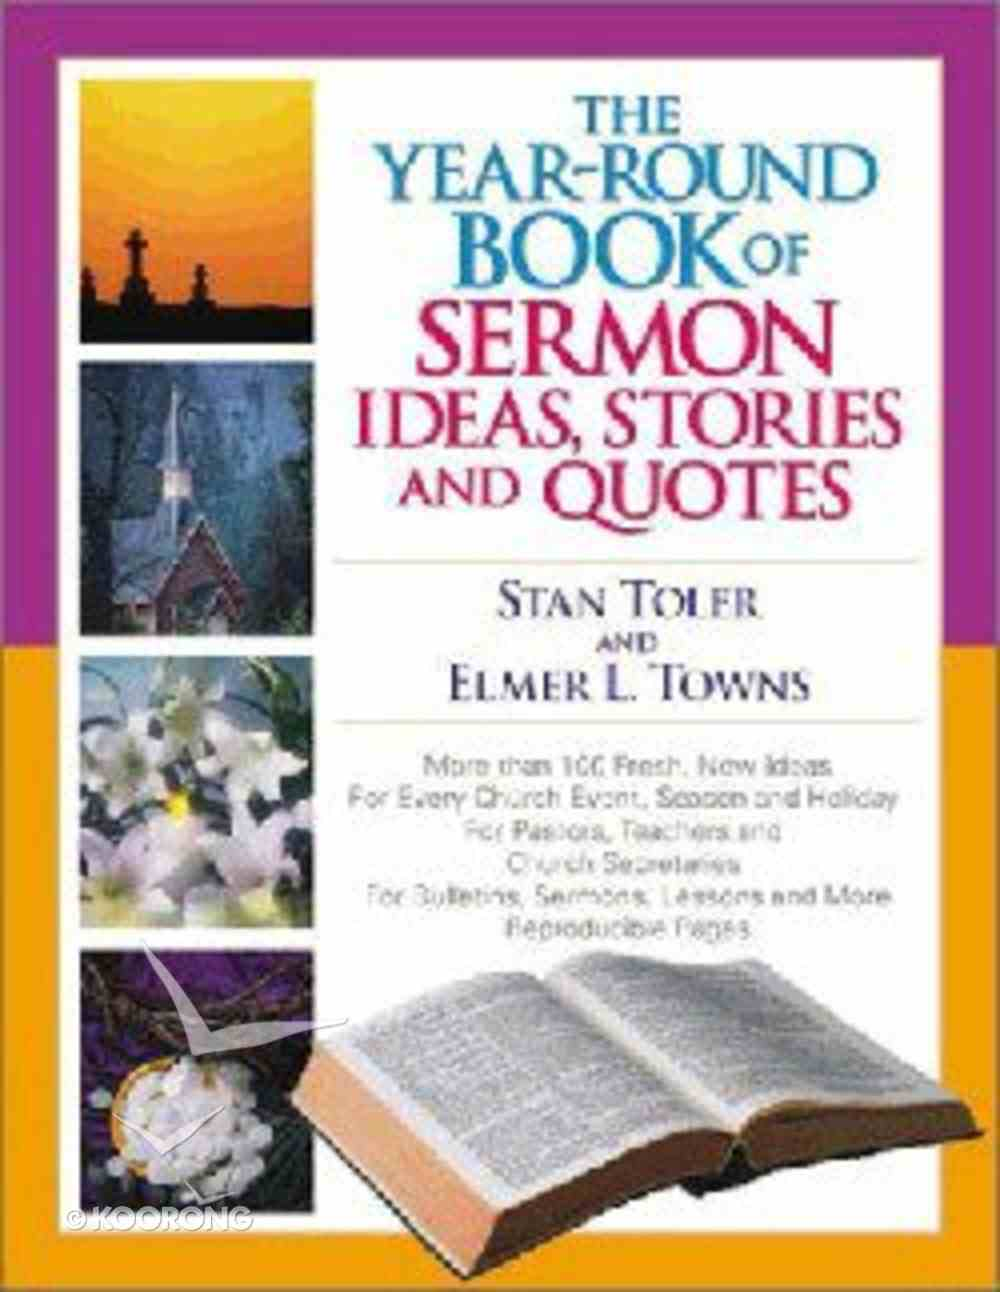 The Year-Round Book of Sermon Ideas, Stories & Quotes Paperback